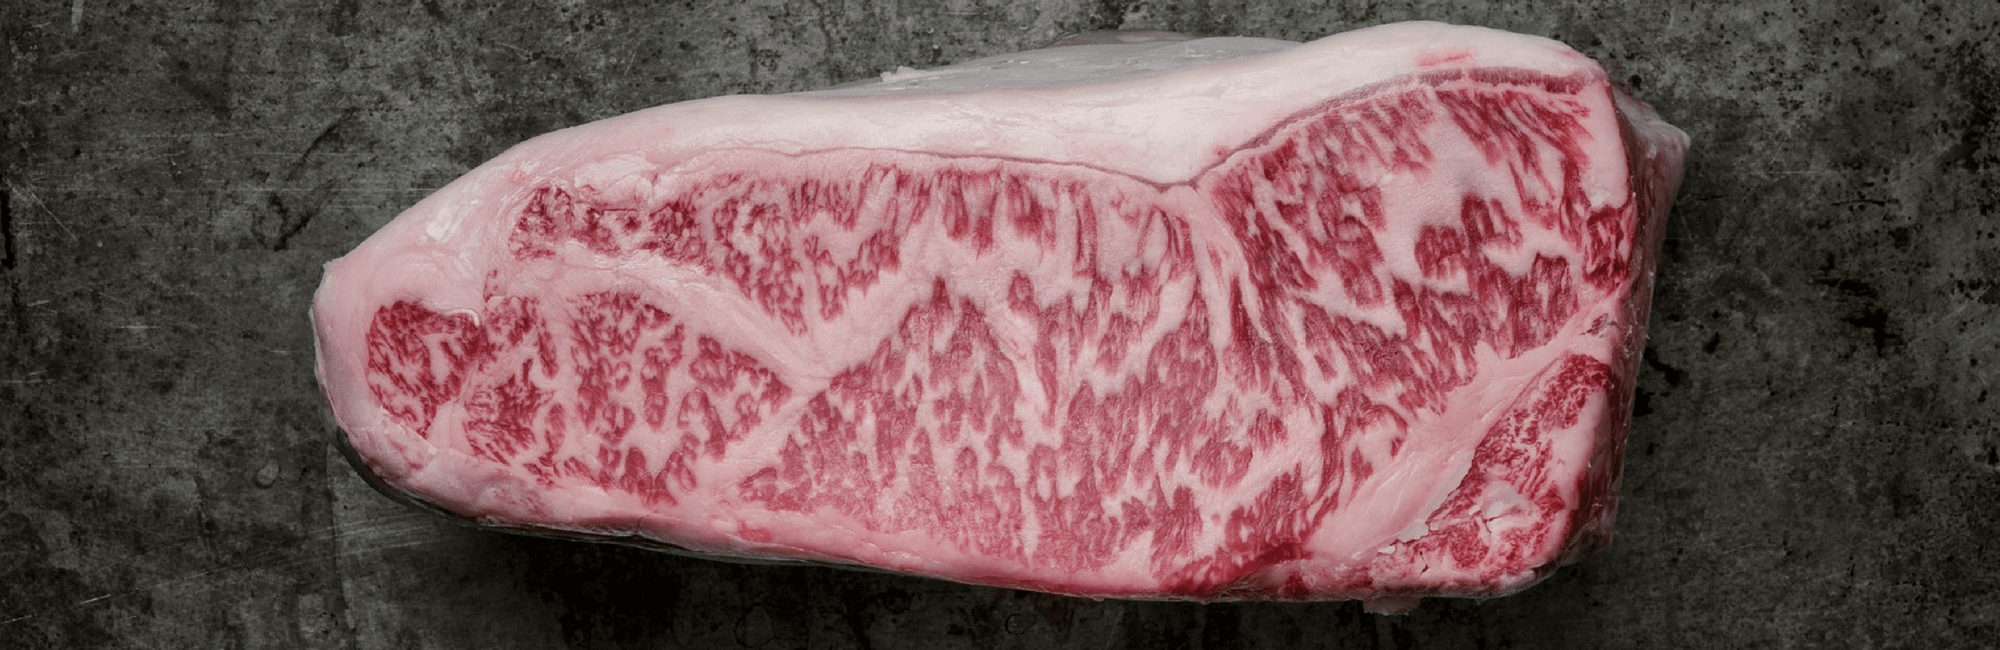 Steak Restaurant in London, The Wagyu Beef at 34 Mayfair